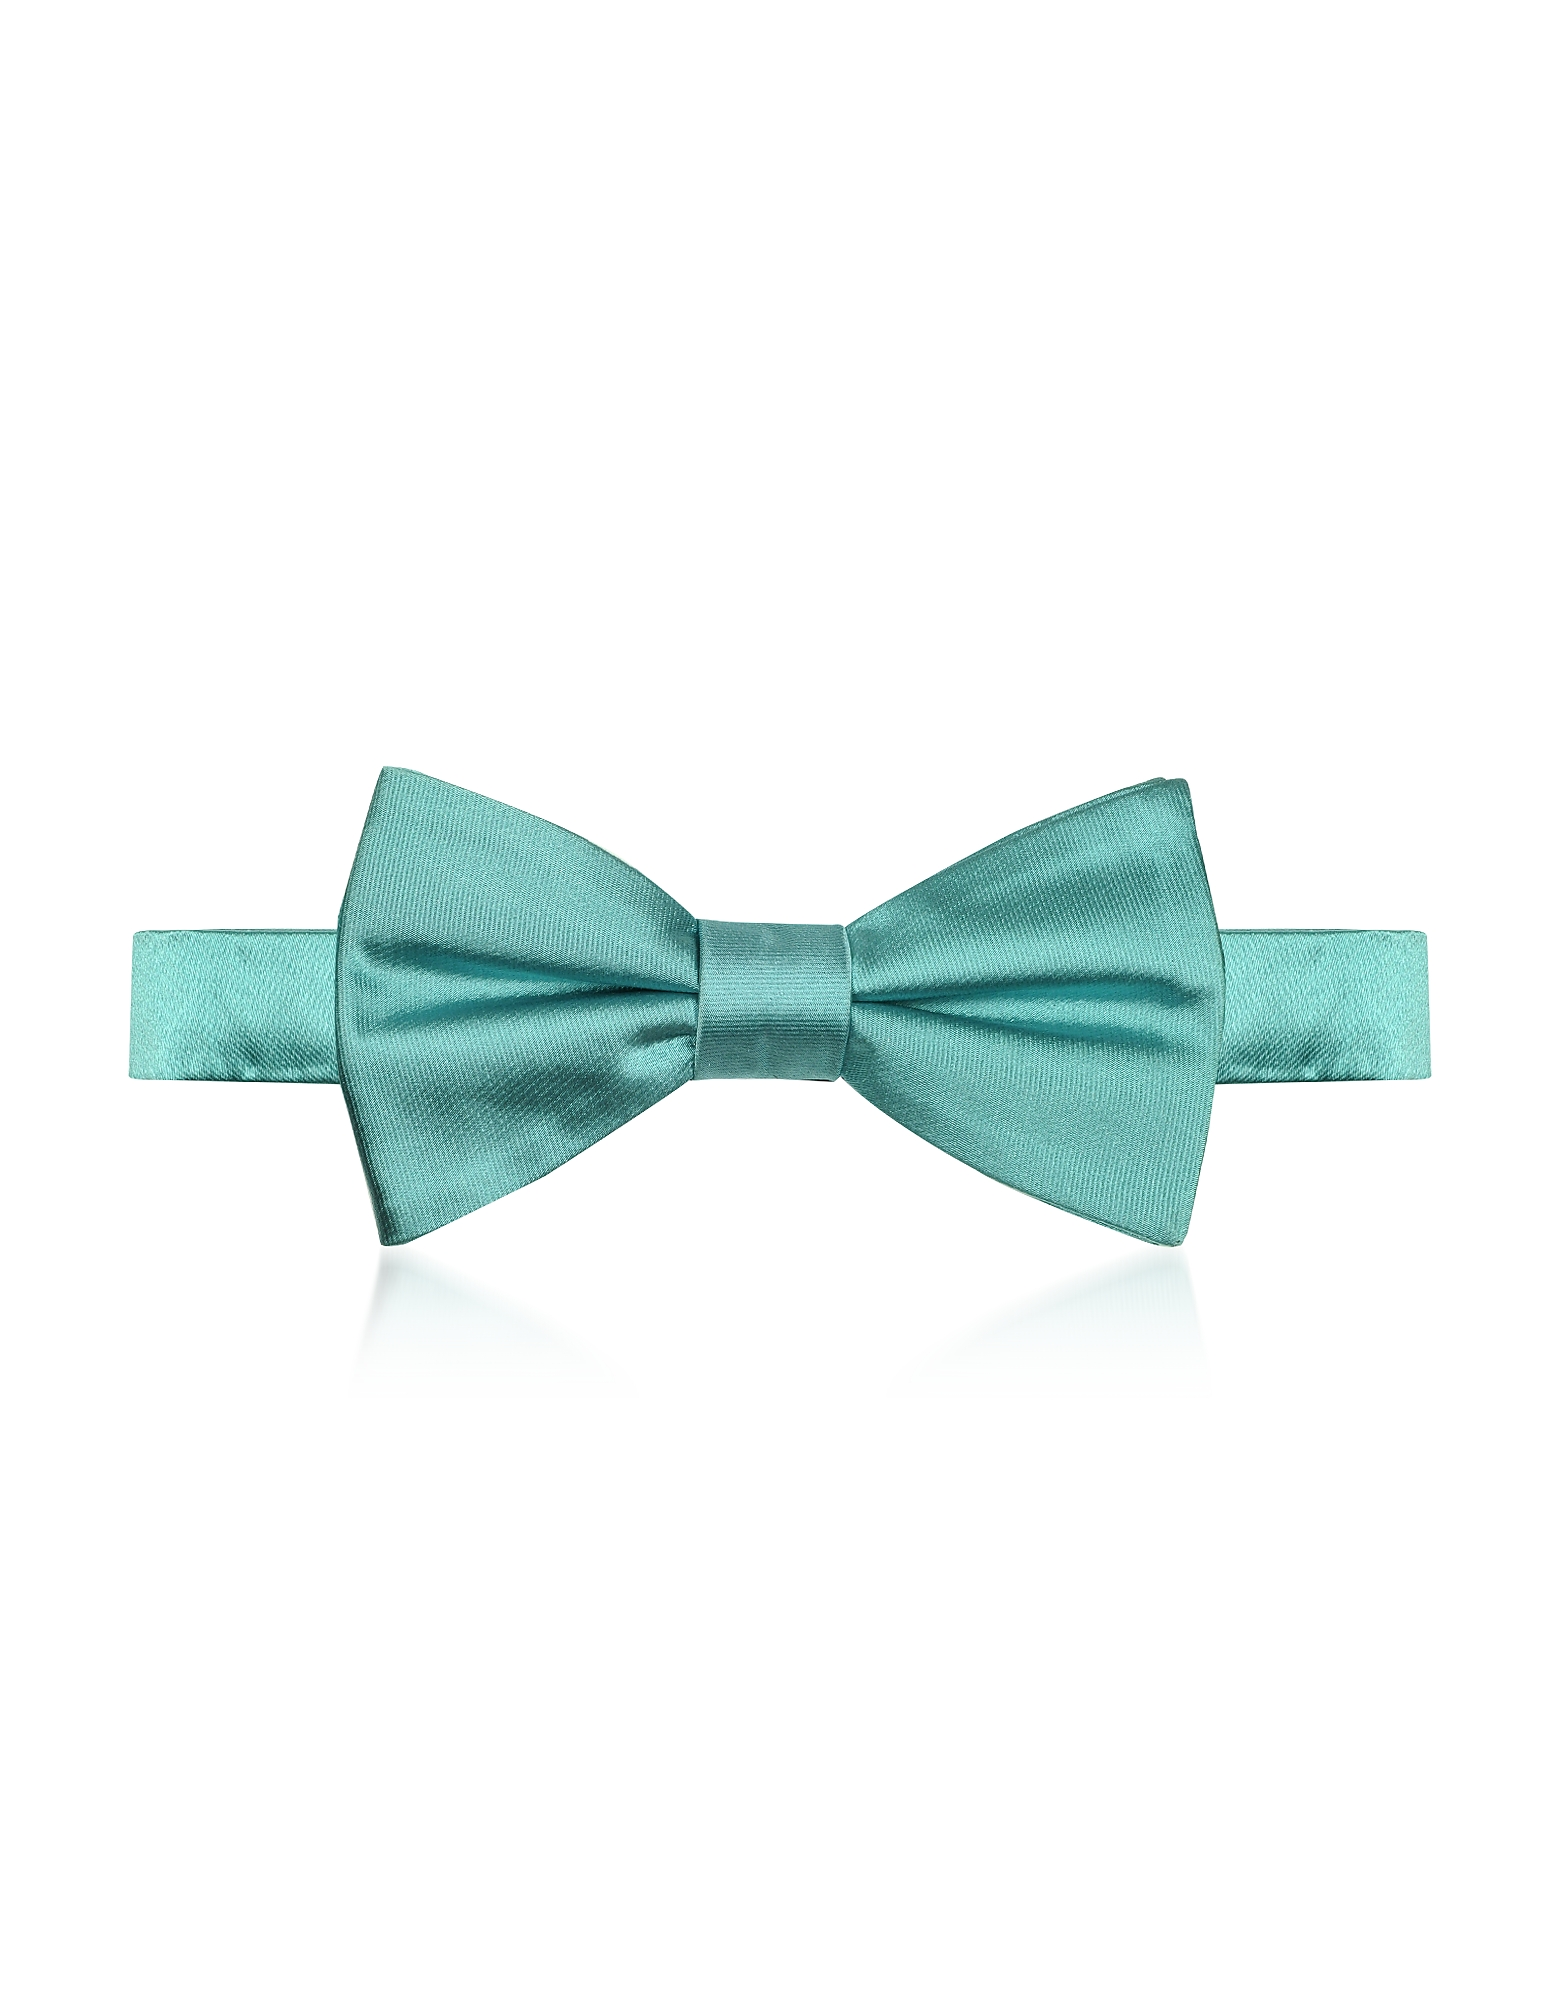 Laura Biagiotti Designer Bowties and Cummerbunds, Aqua Woven Silk Pre-tied Bow-tie